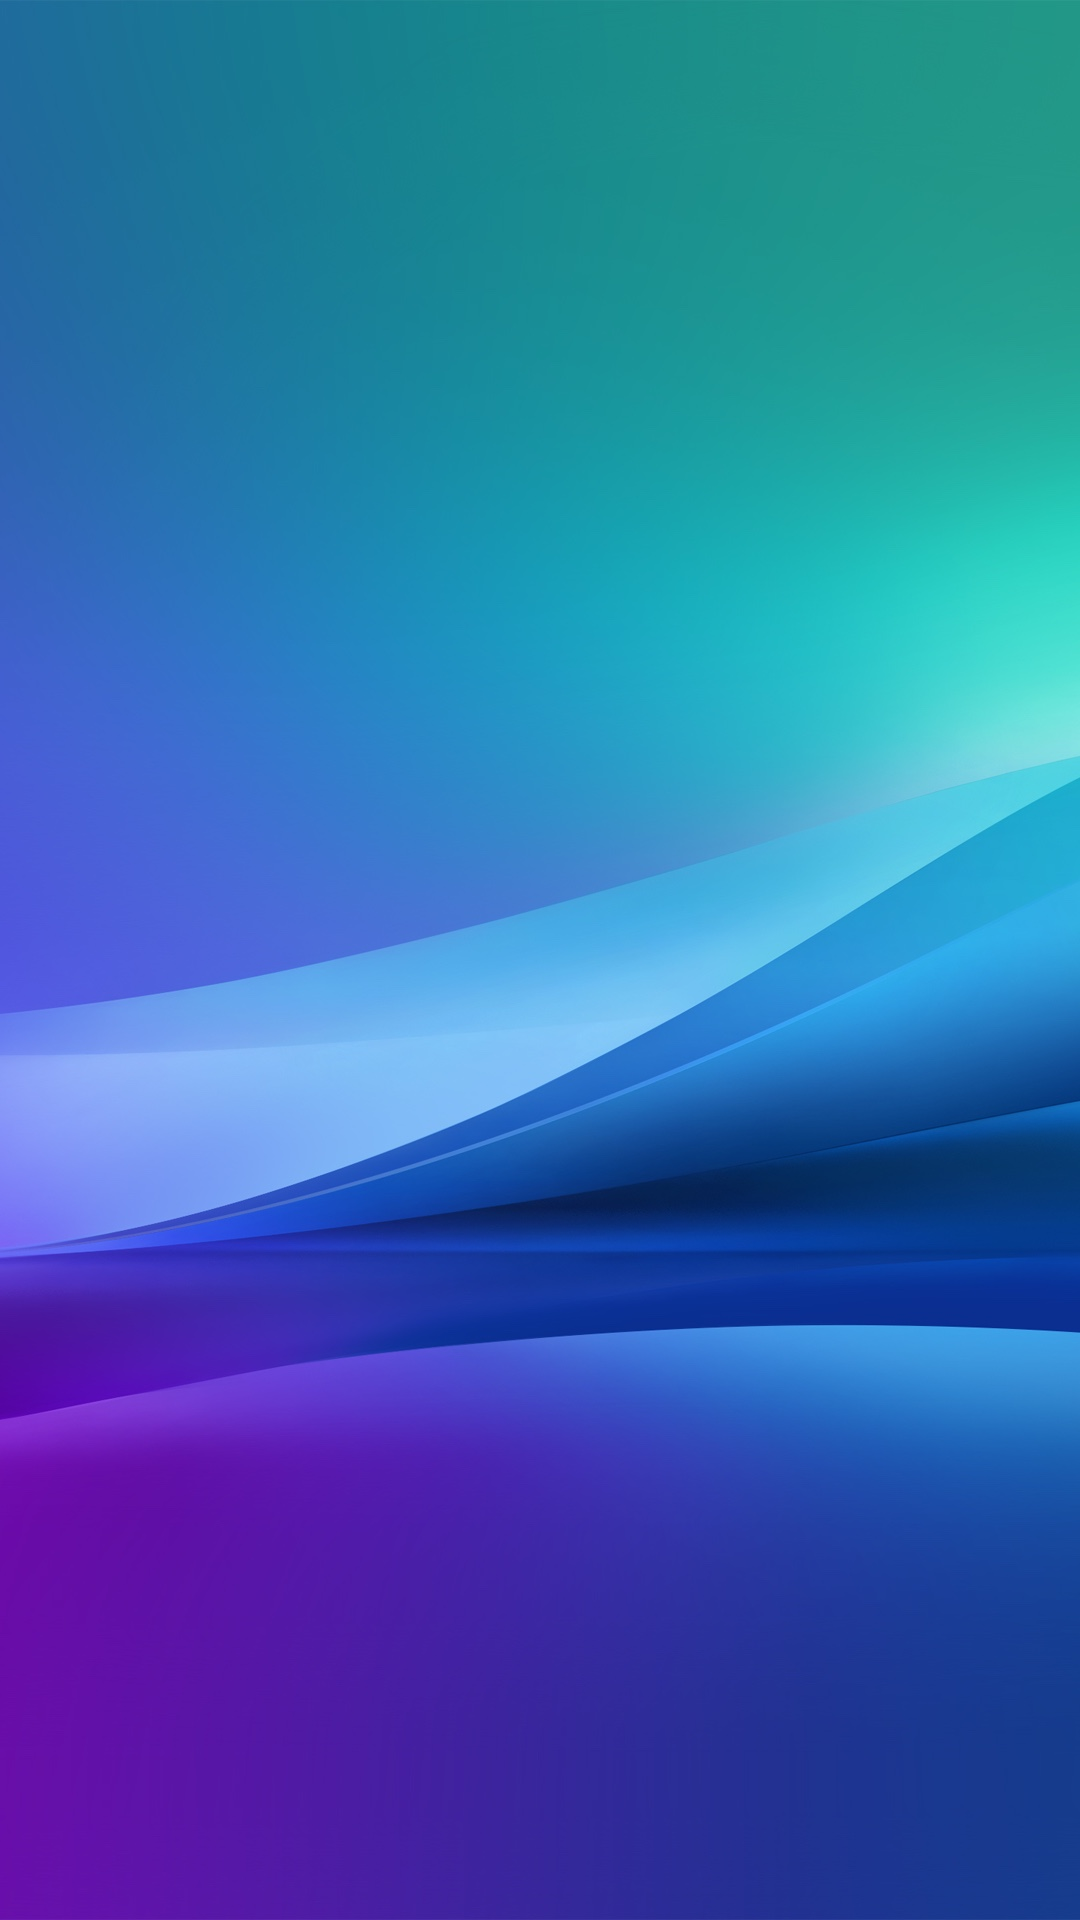 2560x1440 wallpapers pack